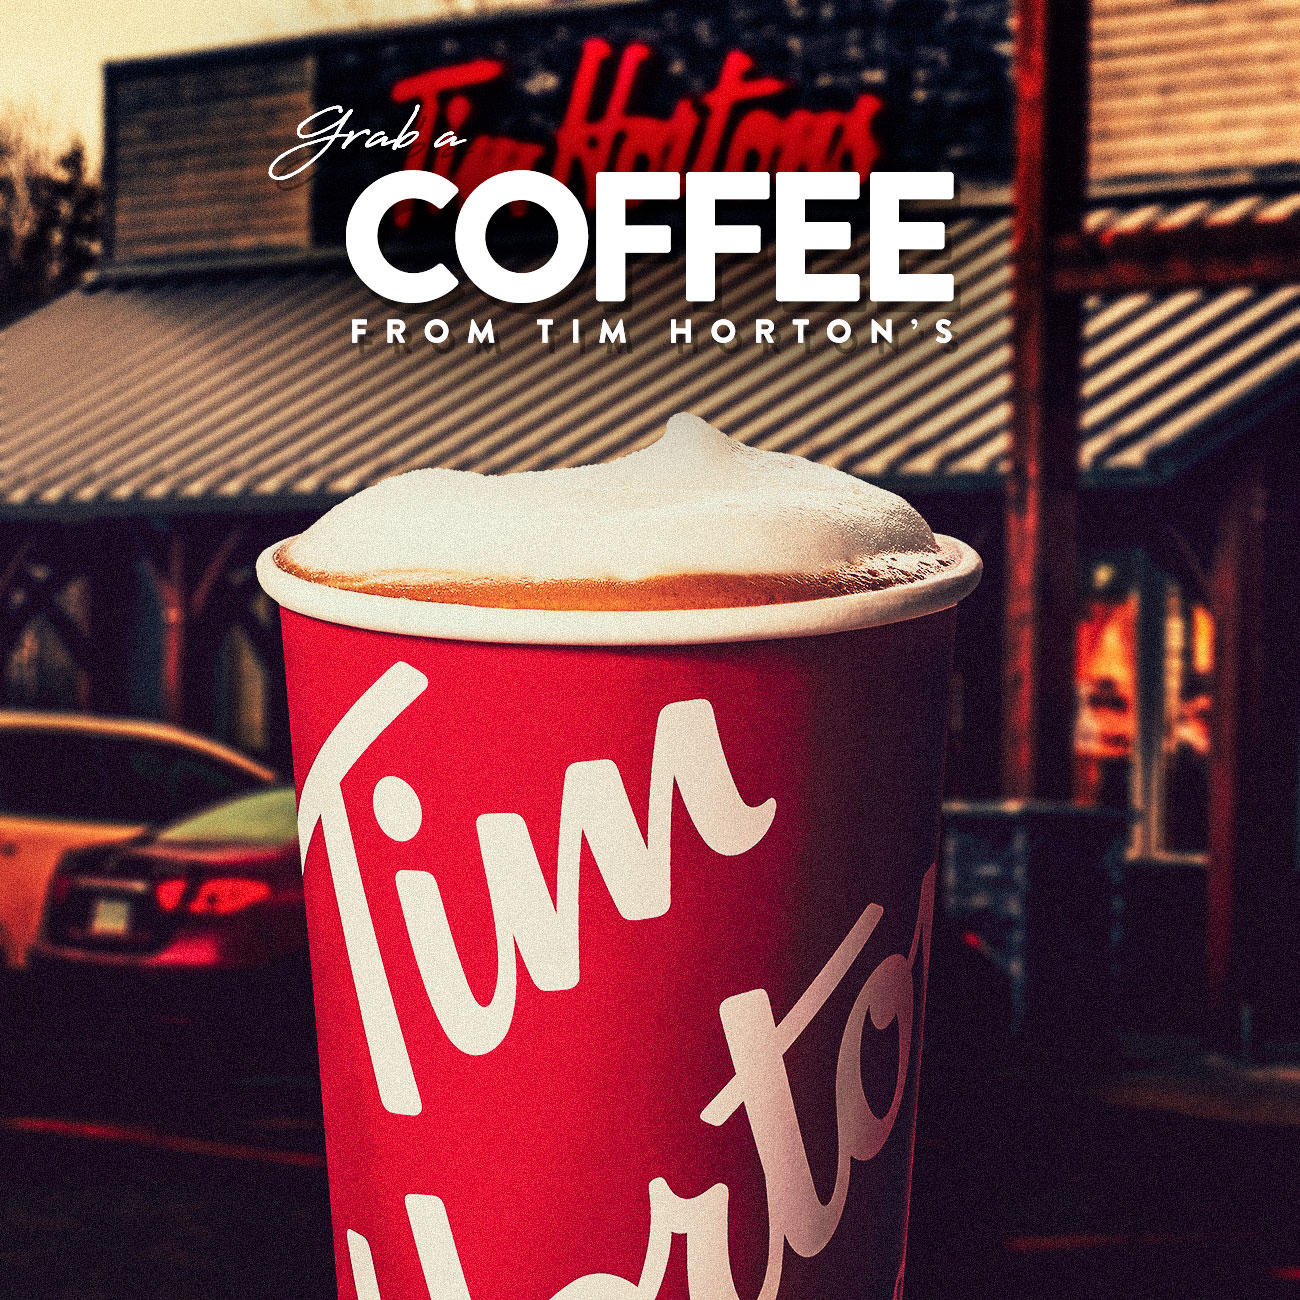 Grab a coffee from Tim Horton's while you are here